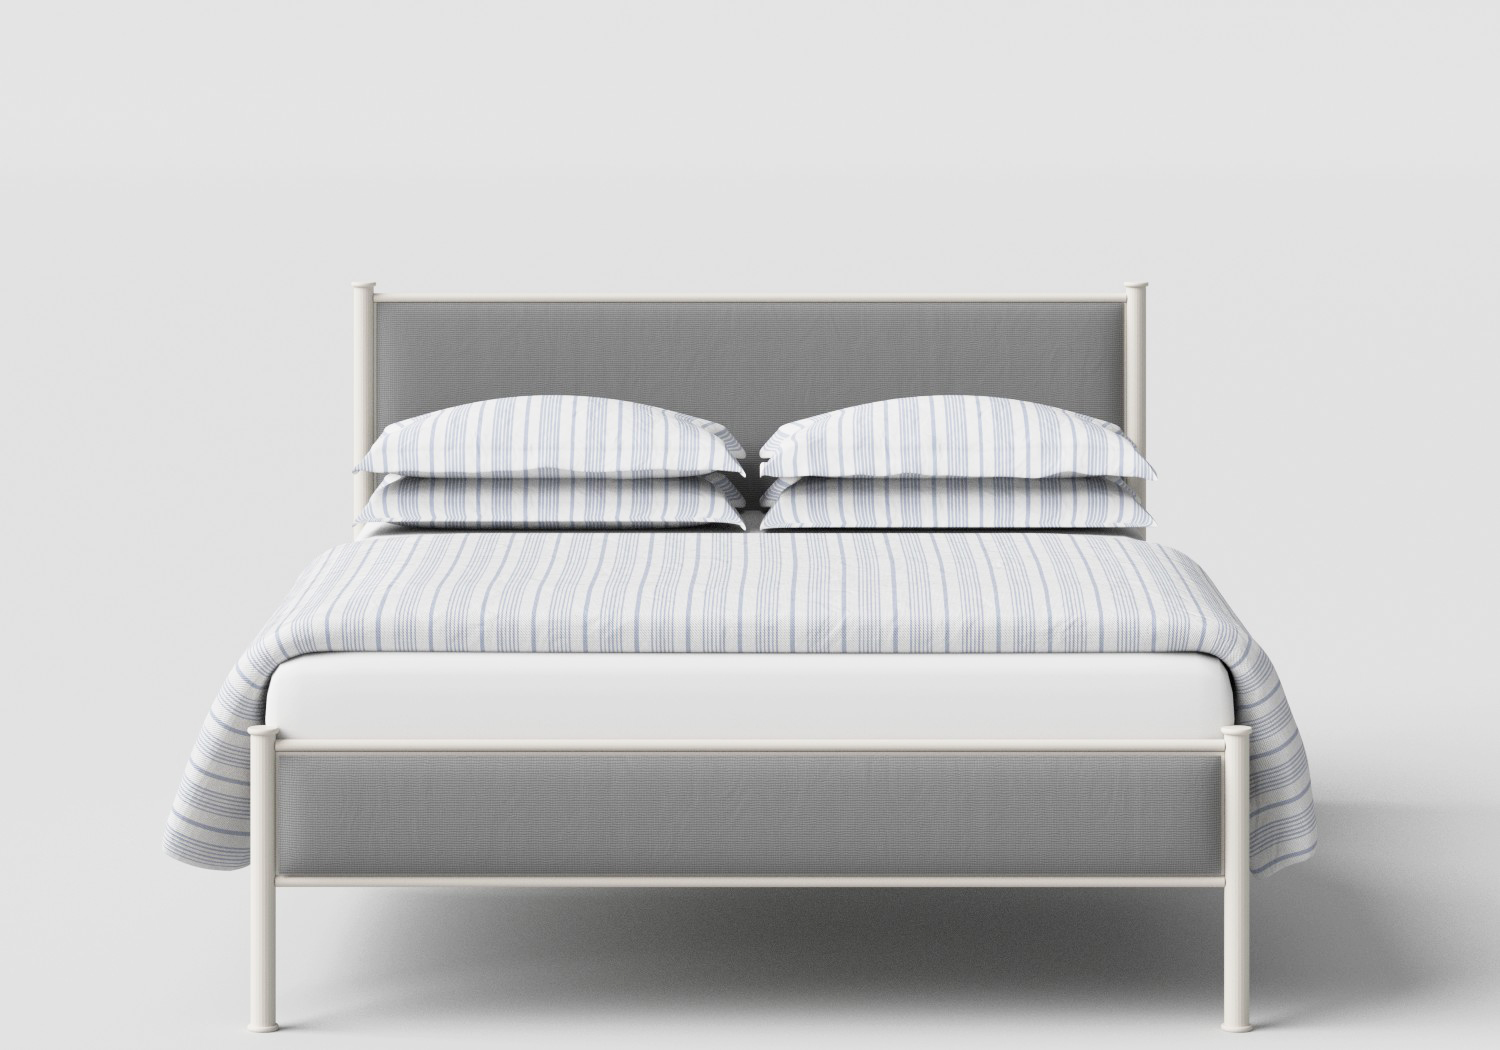 Brest Iron/Metal Upholstered Bed in Glossy Ivory with Grey Fabric